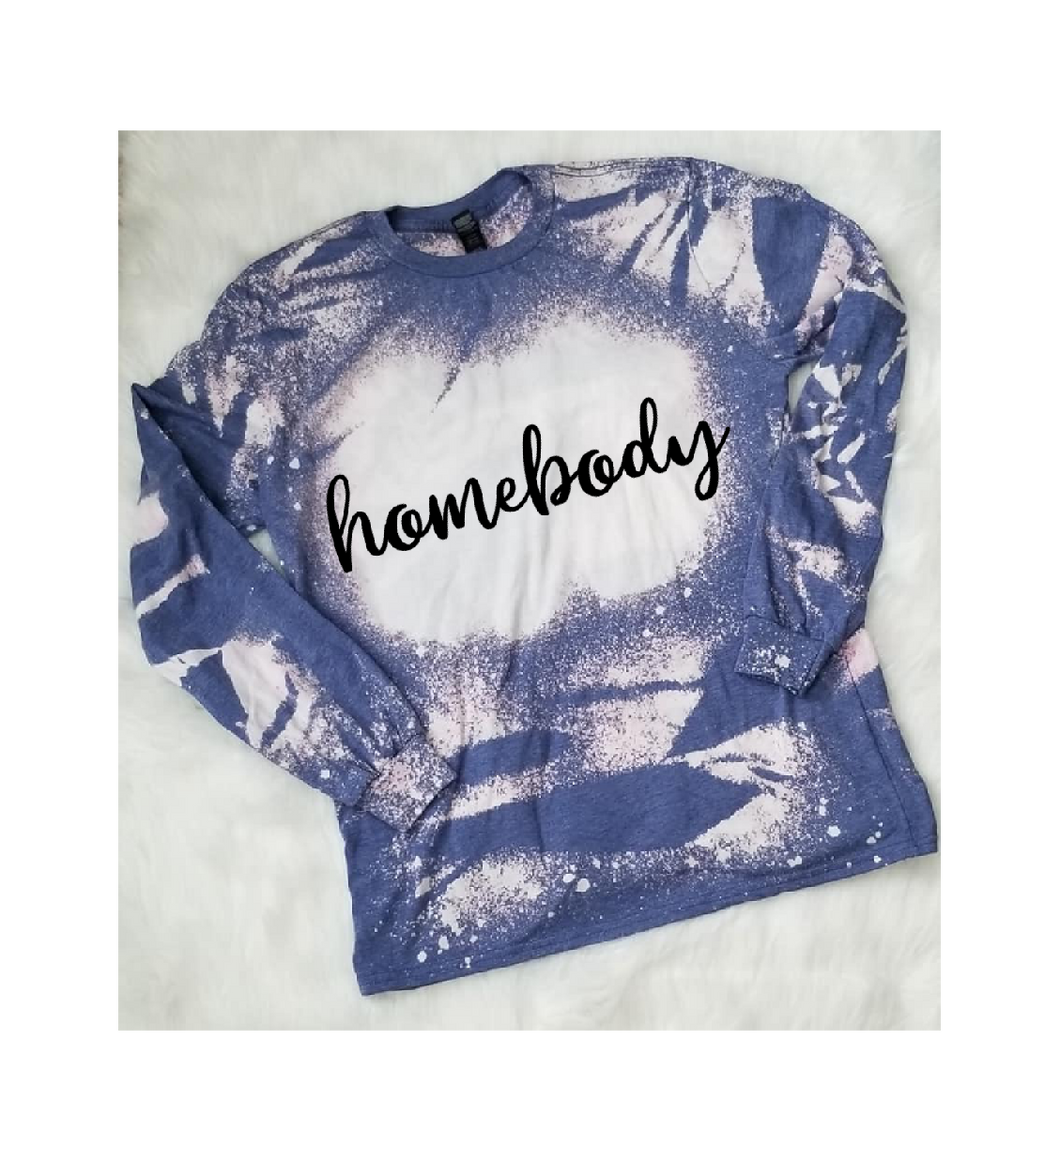 Homebody bleached funny graphic tee long sleeve crew or hoodie - Mavictoria Designs Hot Press Express